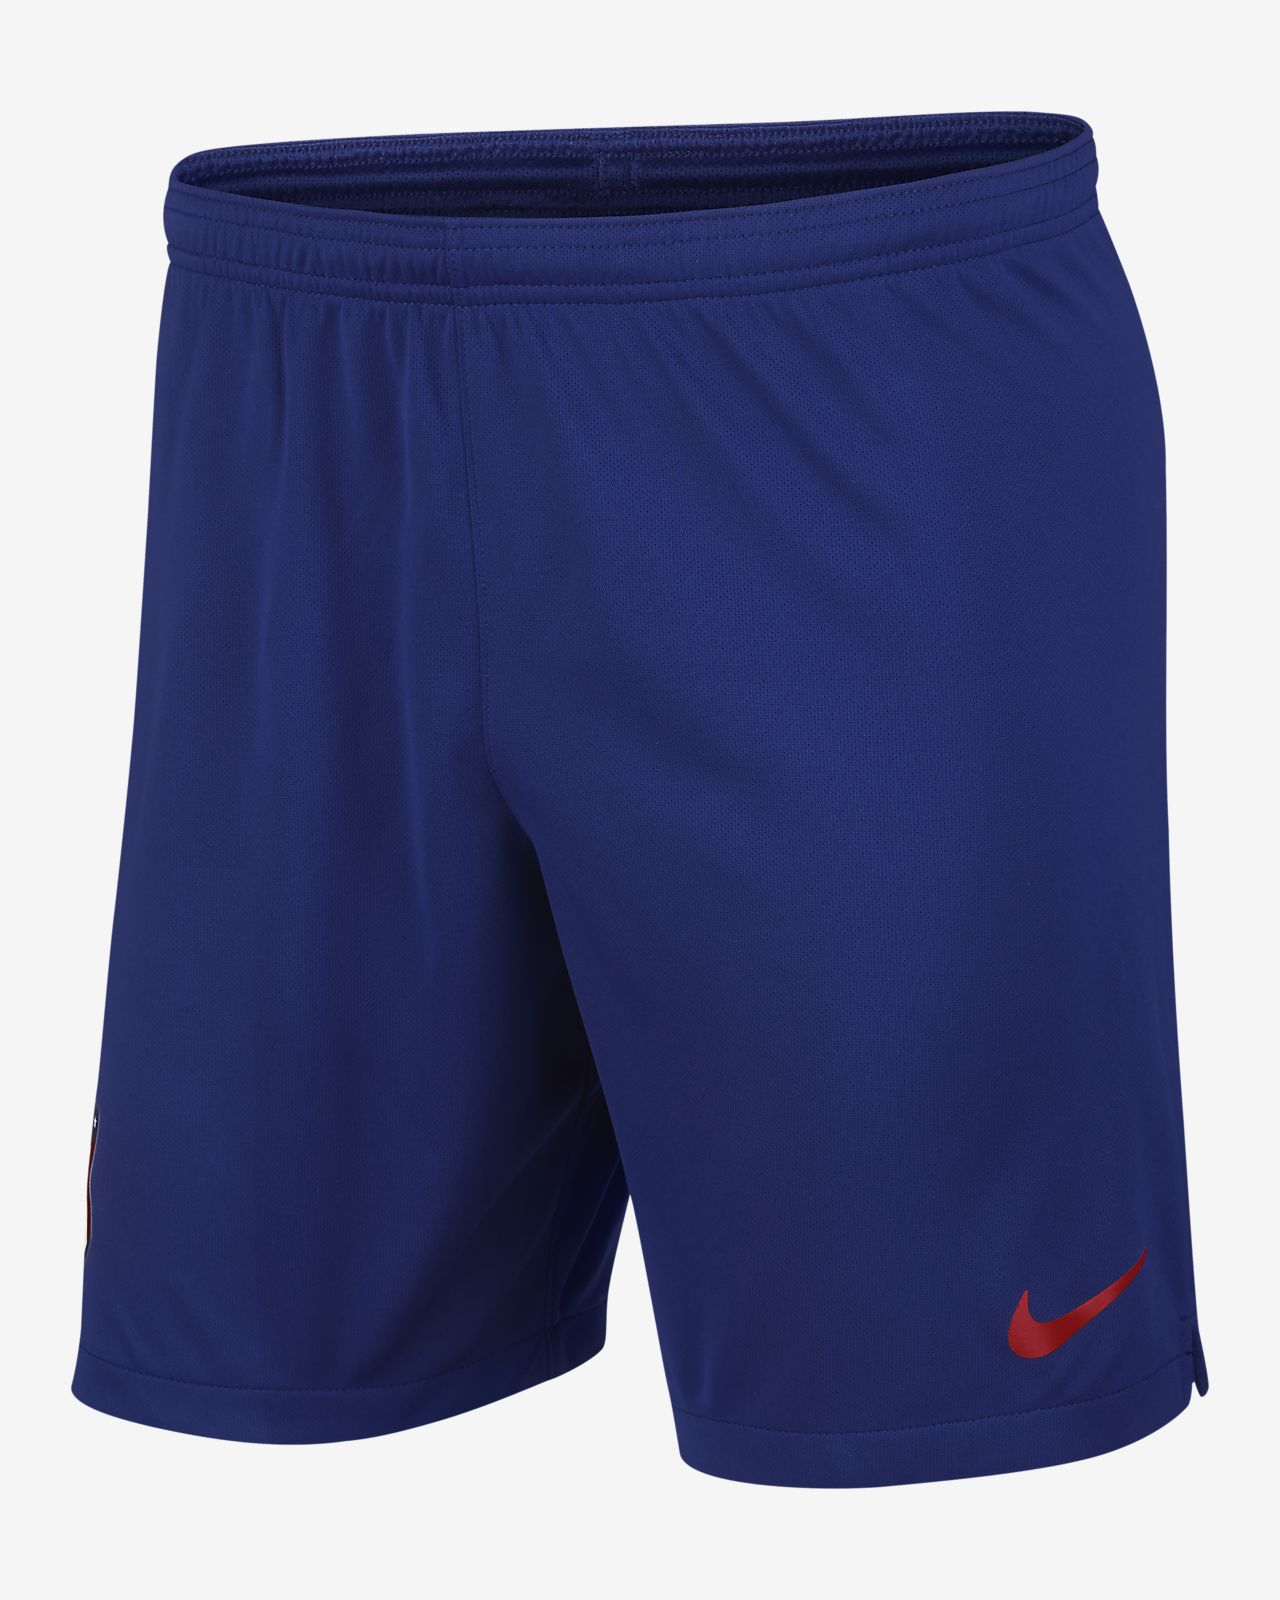 Atlético de Madrid 2019/20 Stadium Home/Away Men's Football Shorts